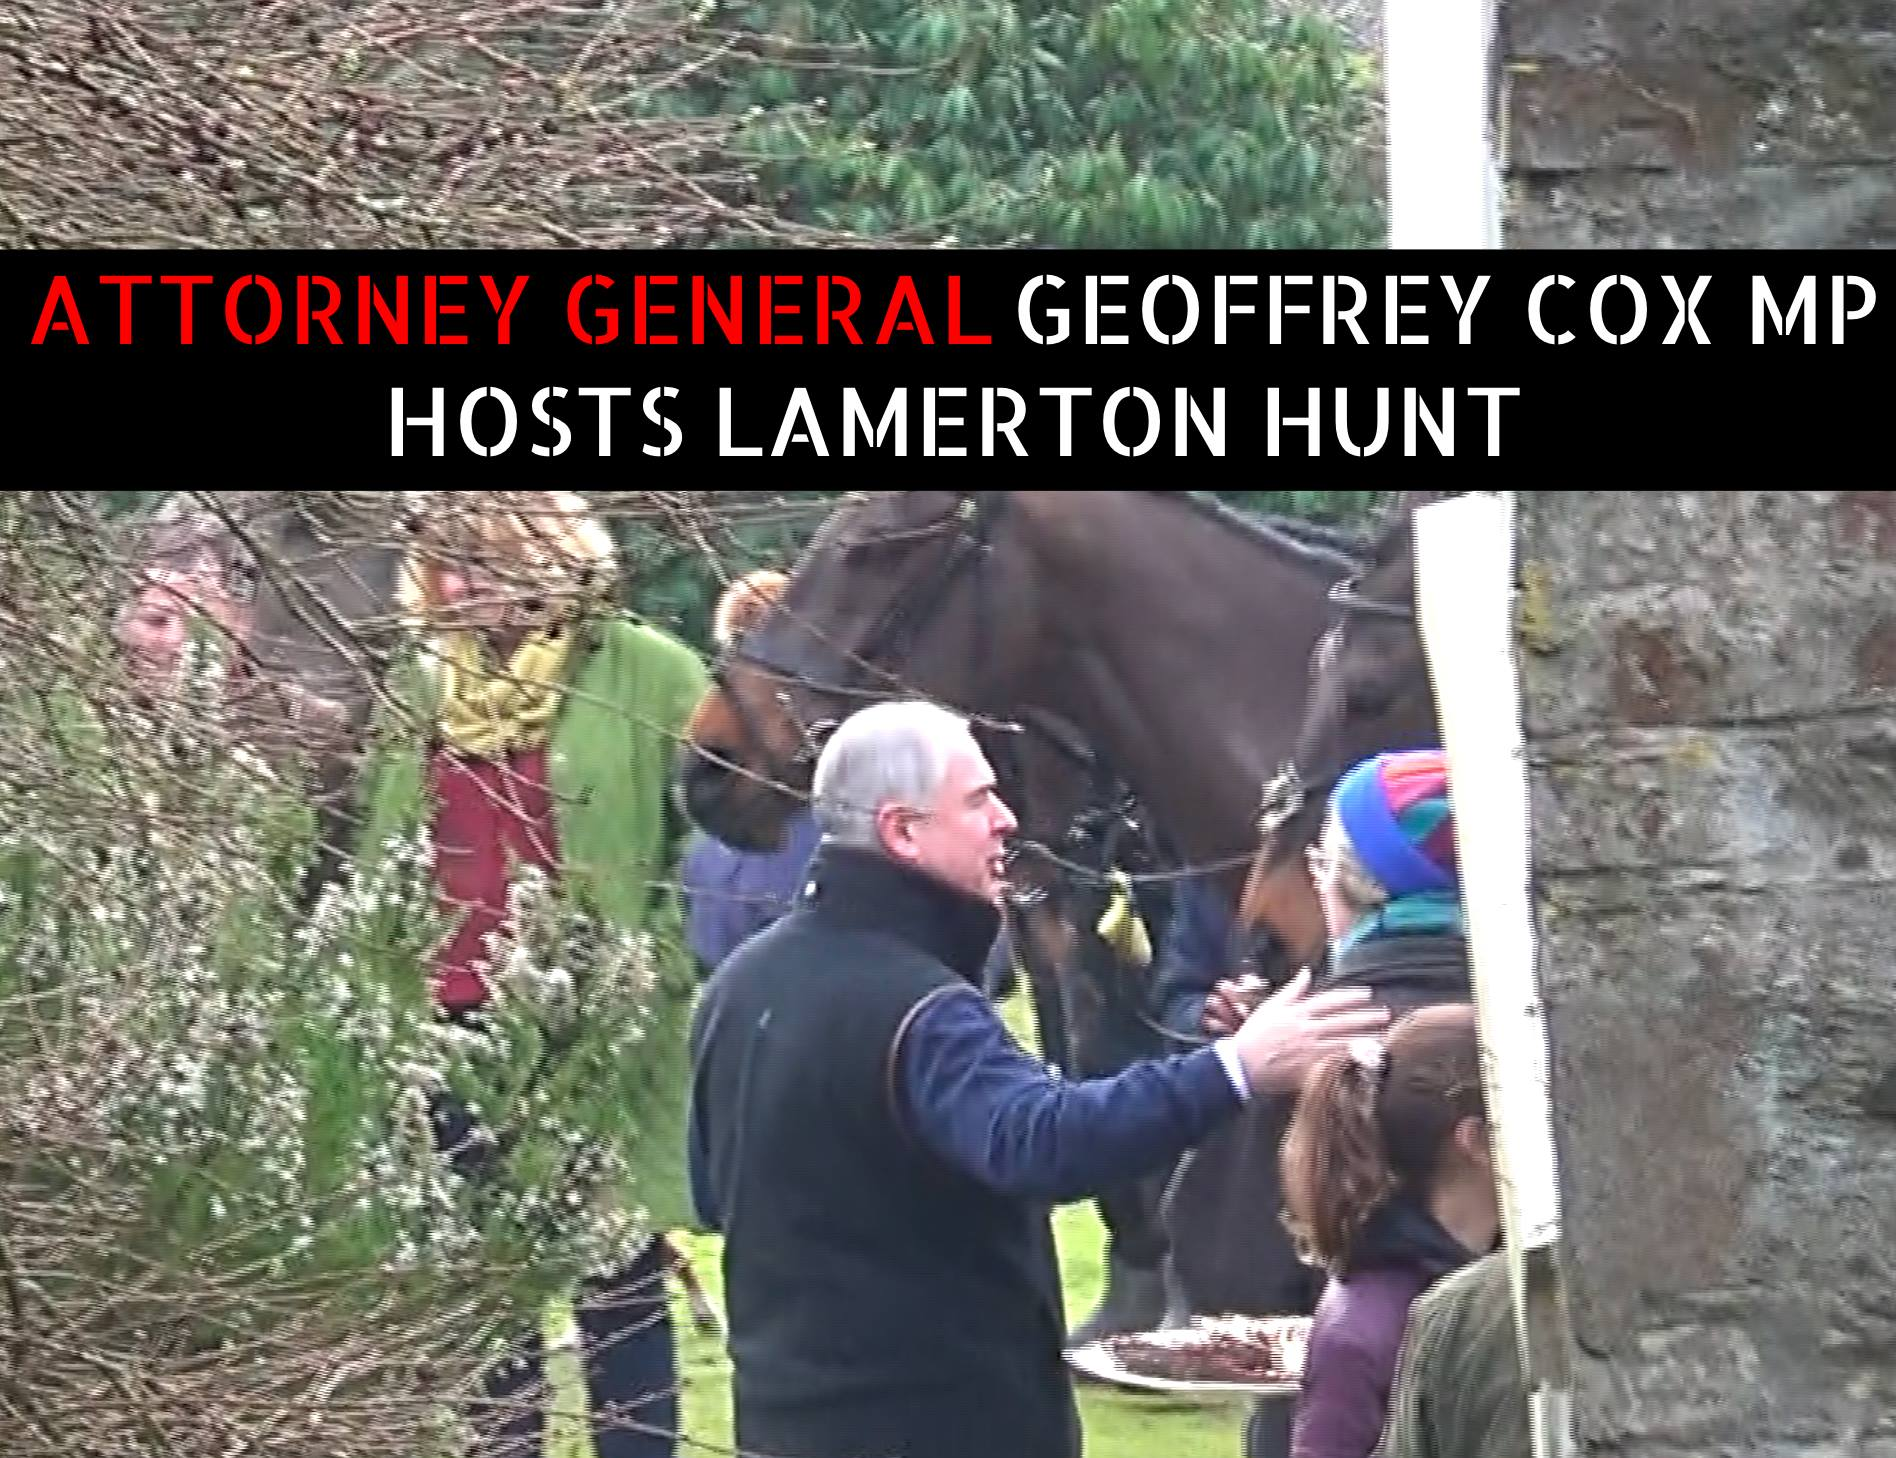 Tory Attorney General Geofrey Cox Illegal Lamerton Devon Fox Hunt